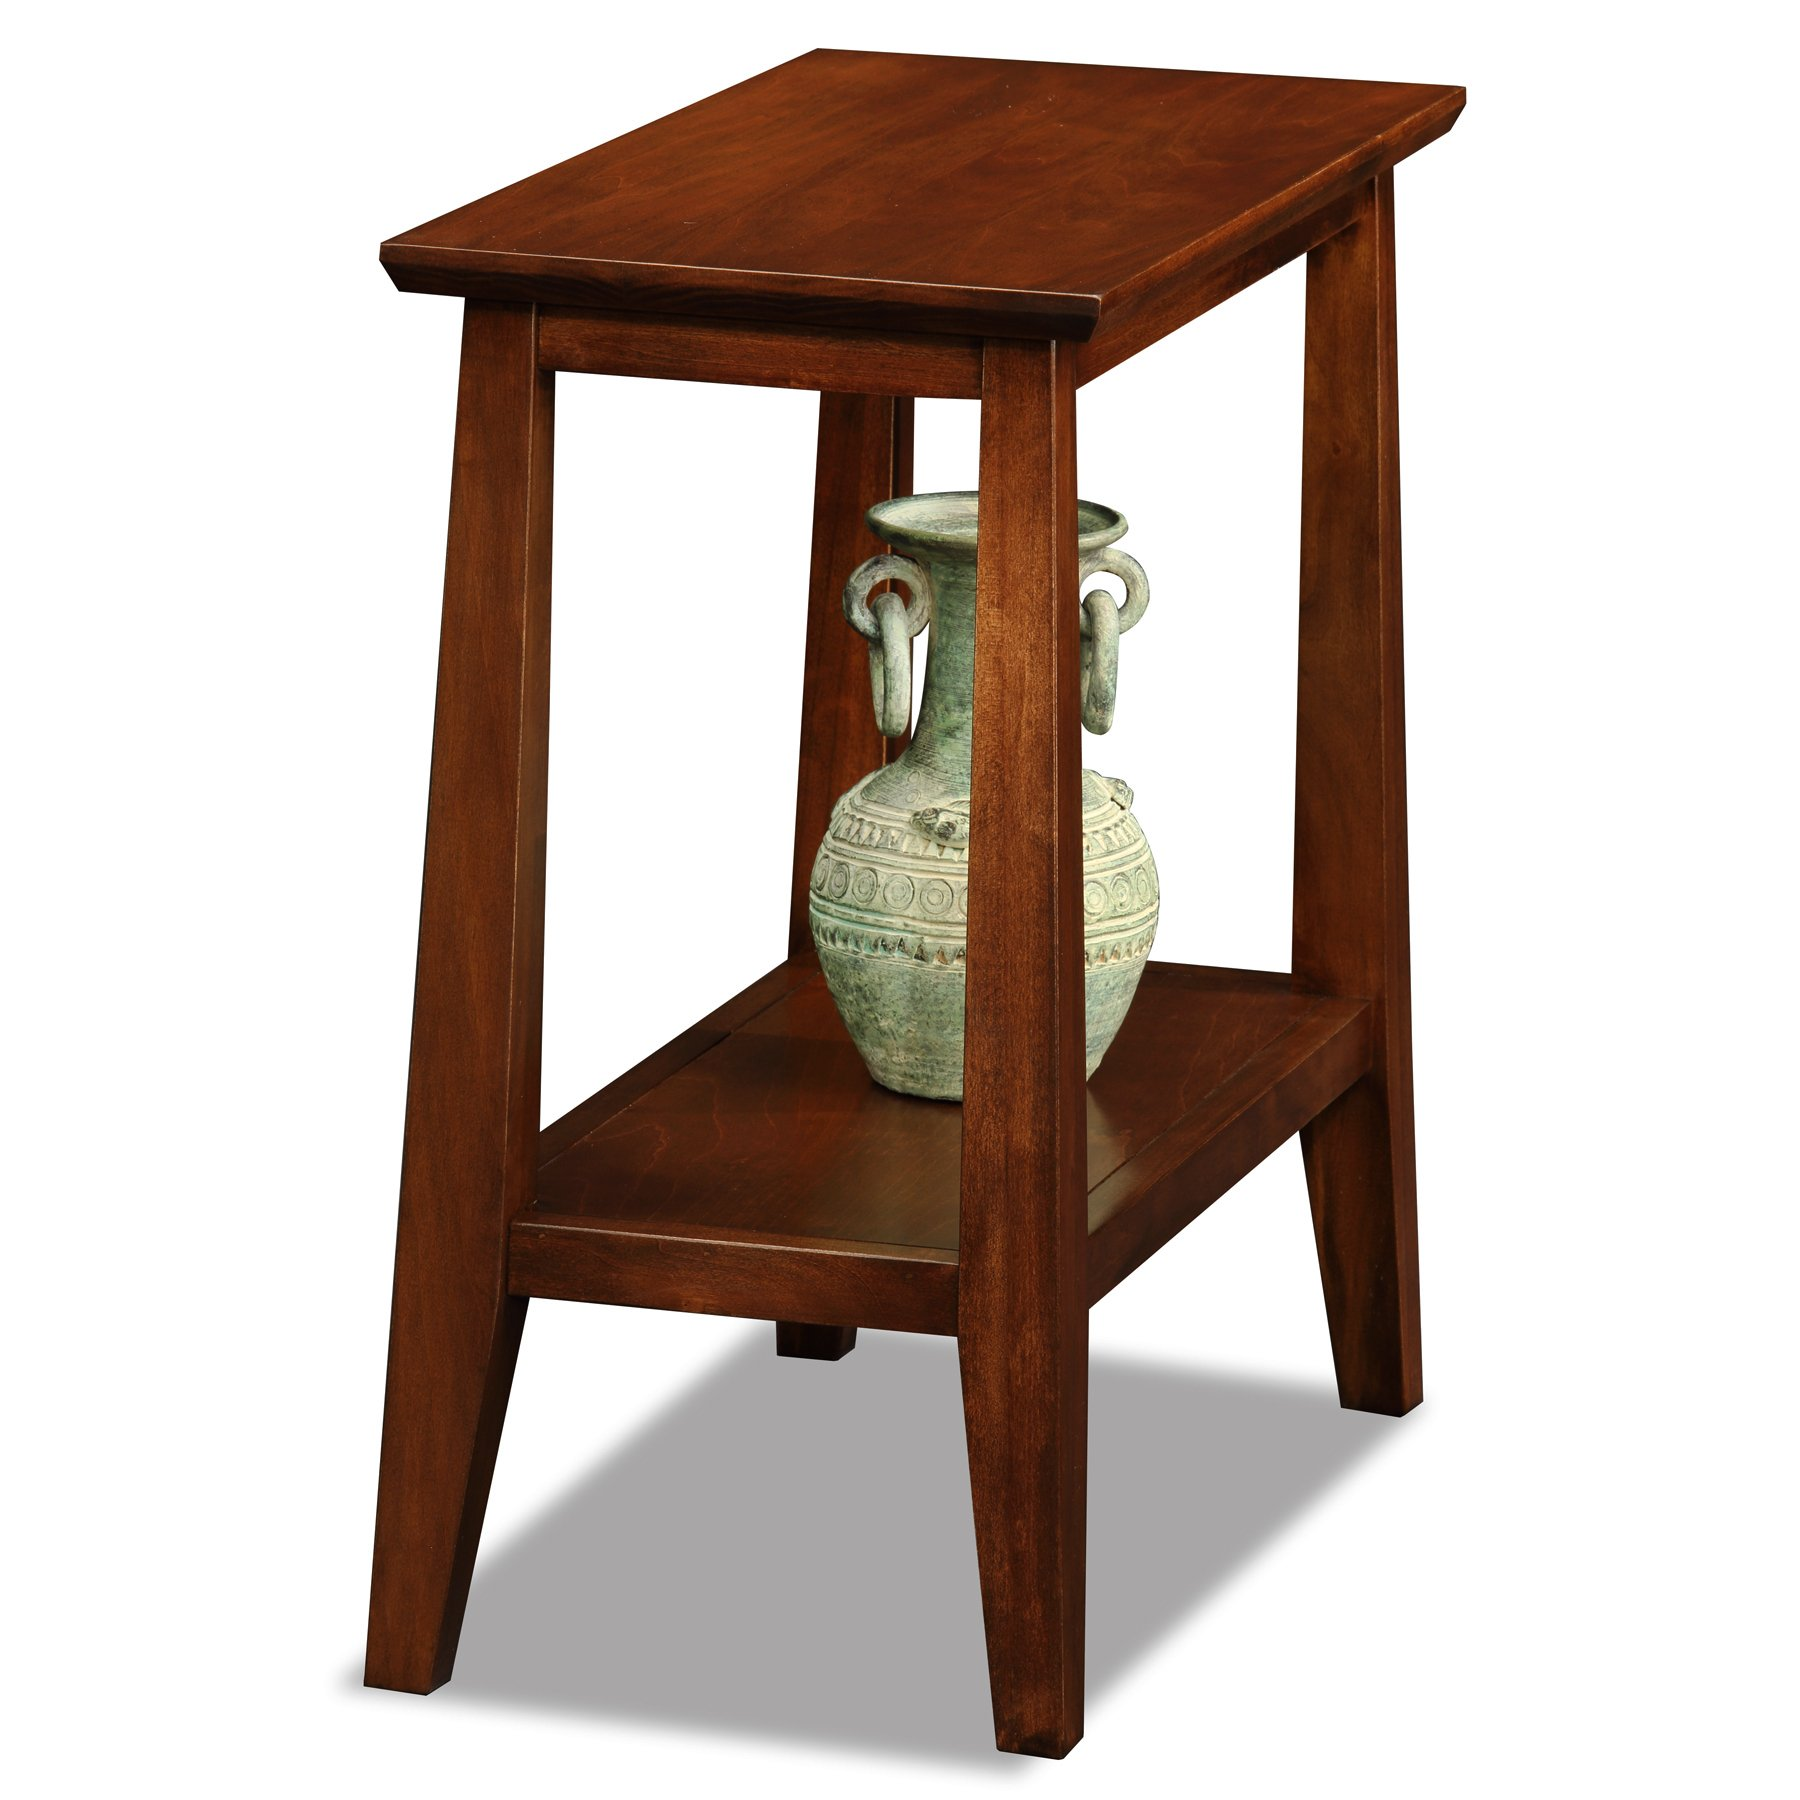 Leick Delton Narrow Chairside End Table by Leick Furniture